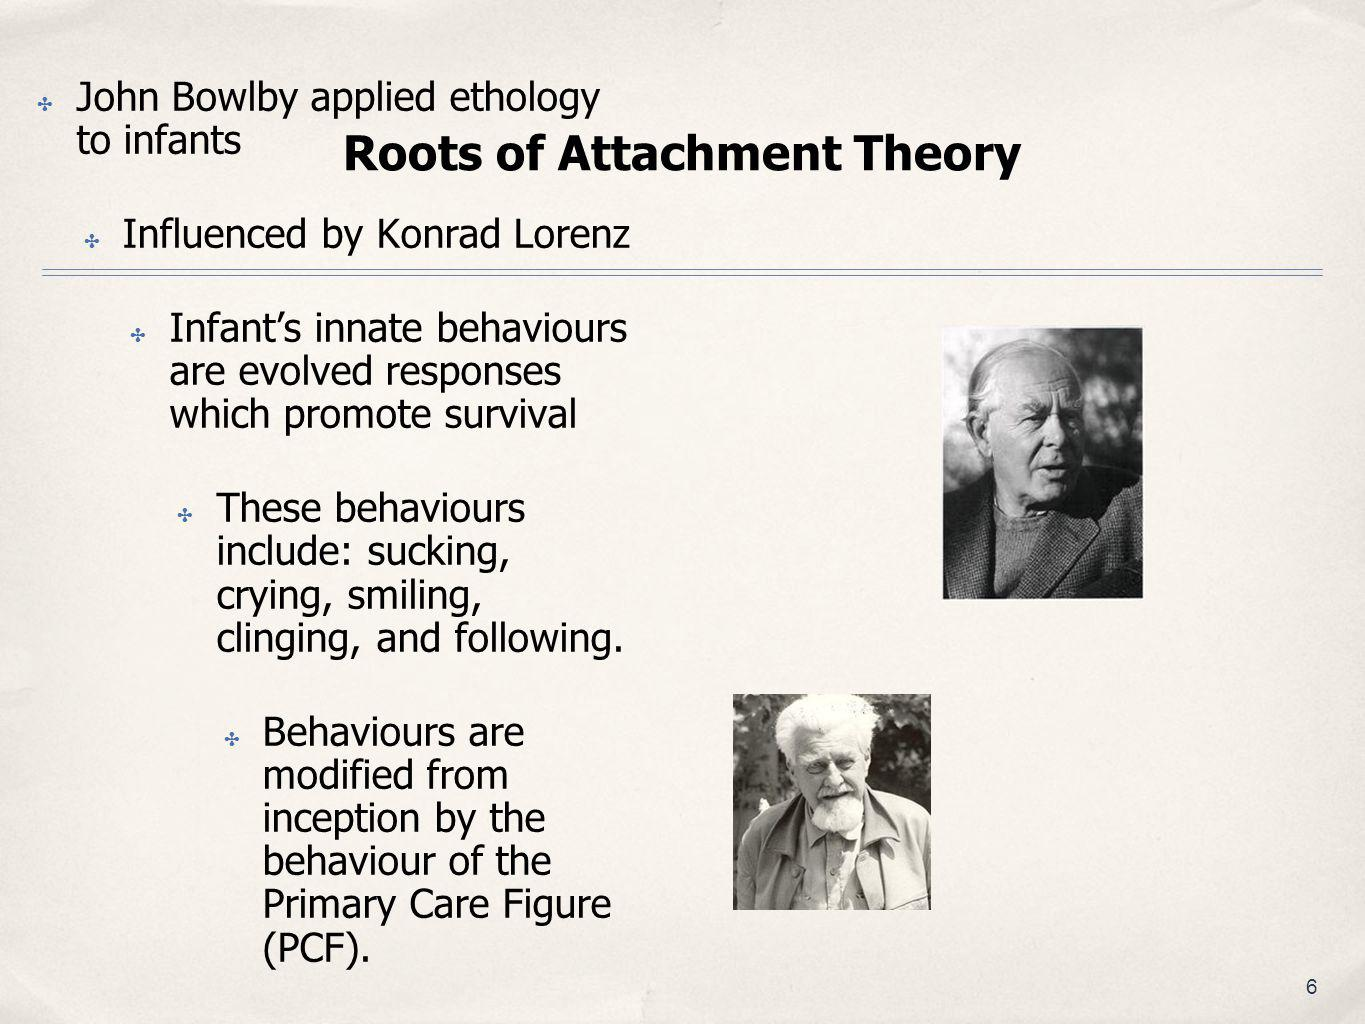 Roots of Attachment Theory